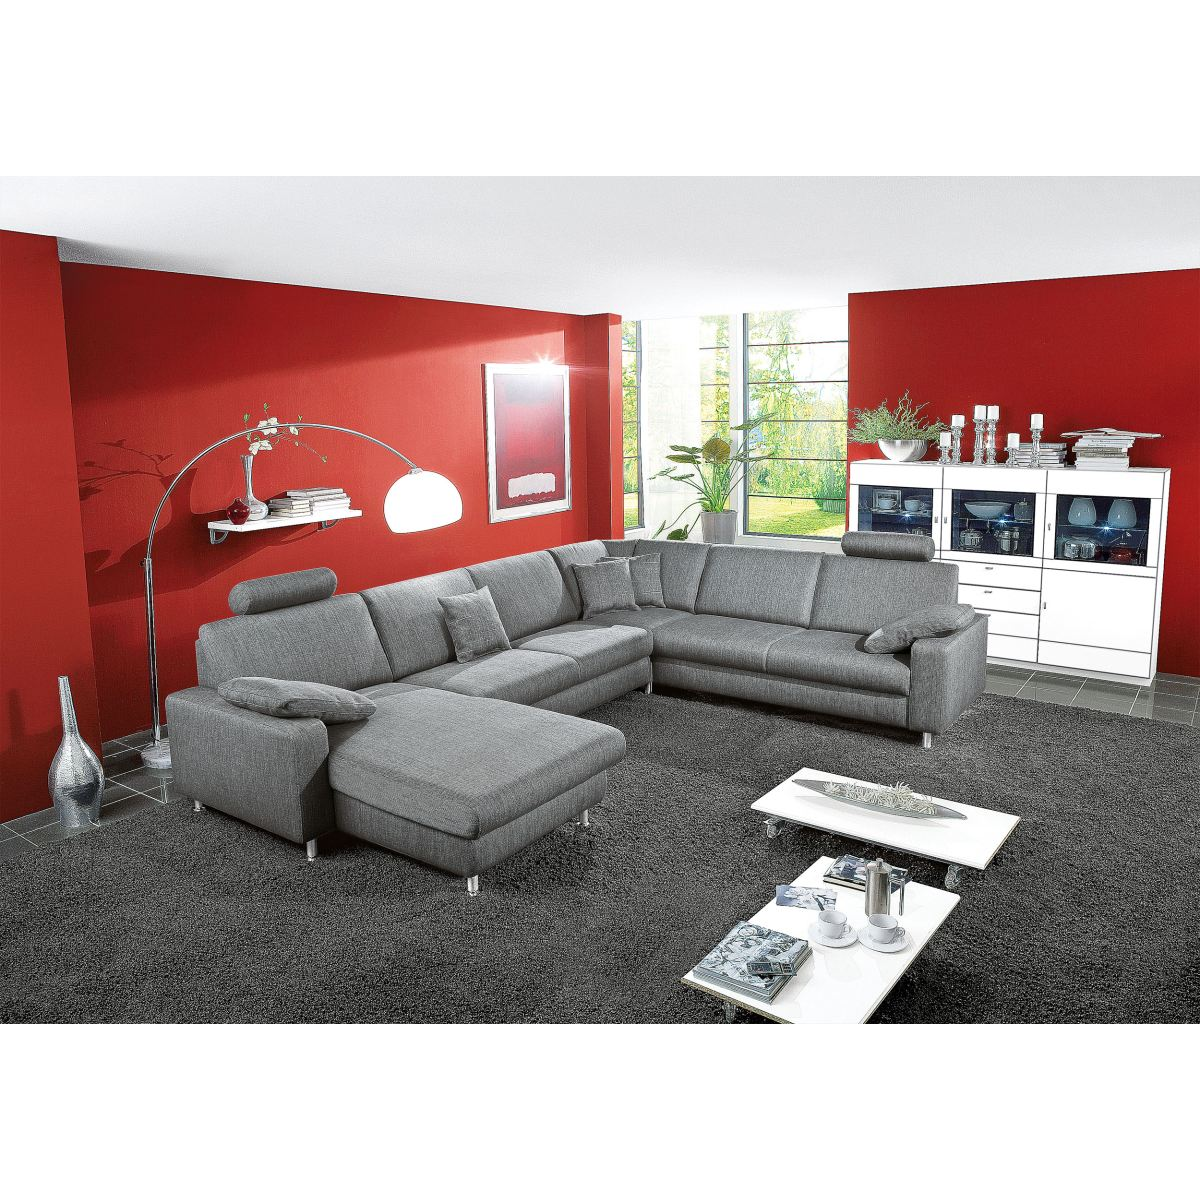 grau sofa latest full size of ideenkhles ikea ektorp grau. Black Bedroom Furniture Sets. Home Design Ideas